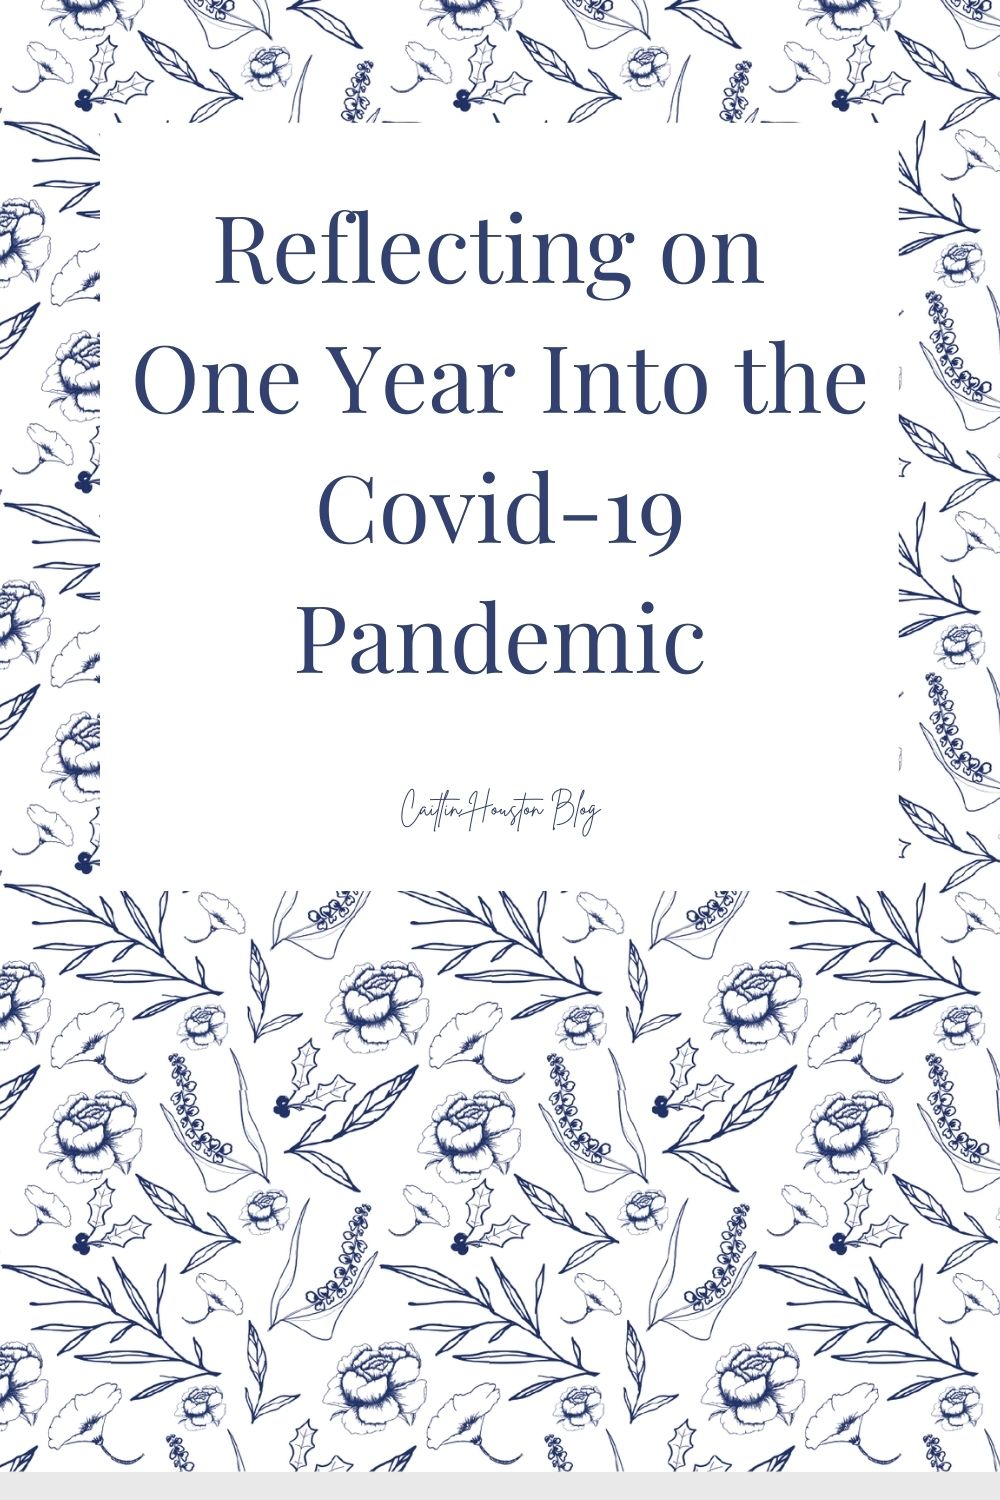 Reflecting on One Year Into the Covid-19 Pandemic